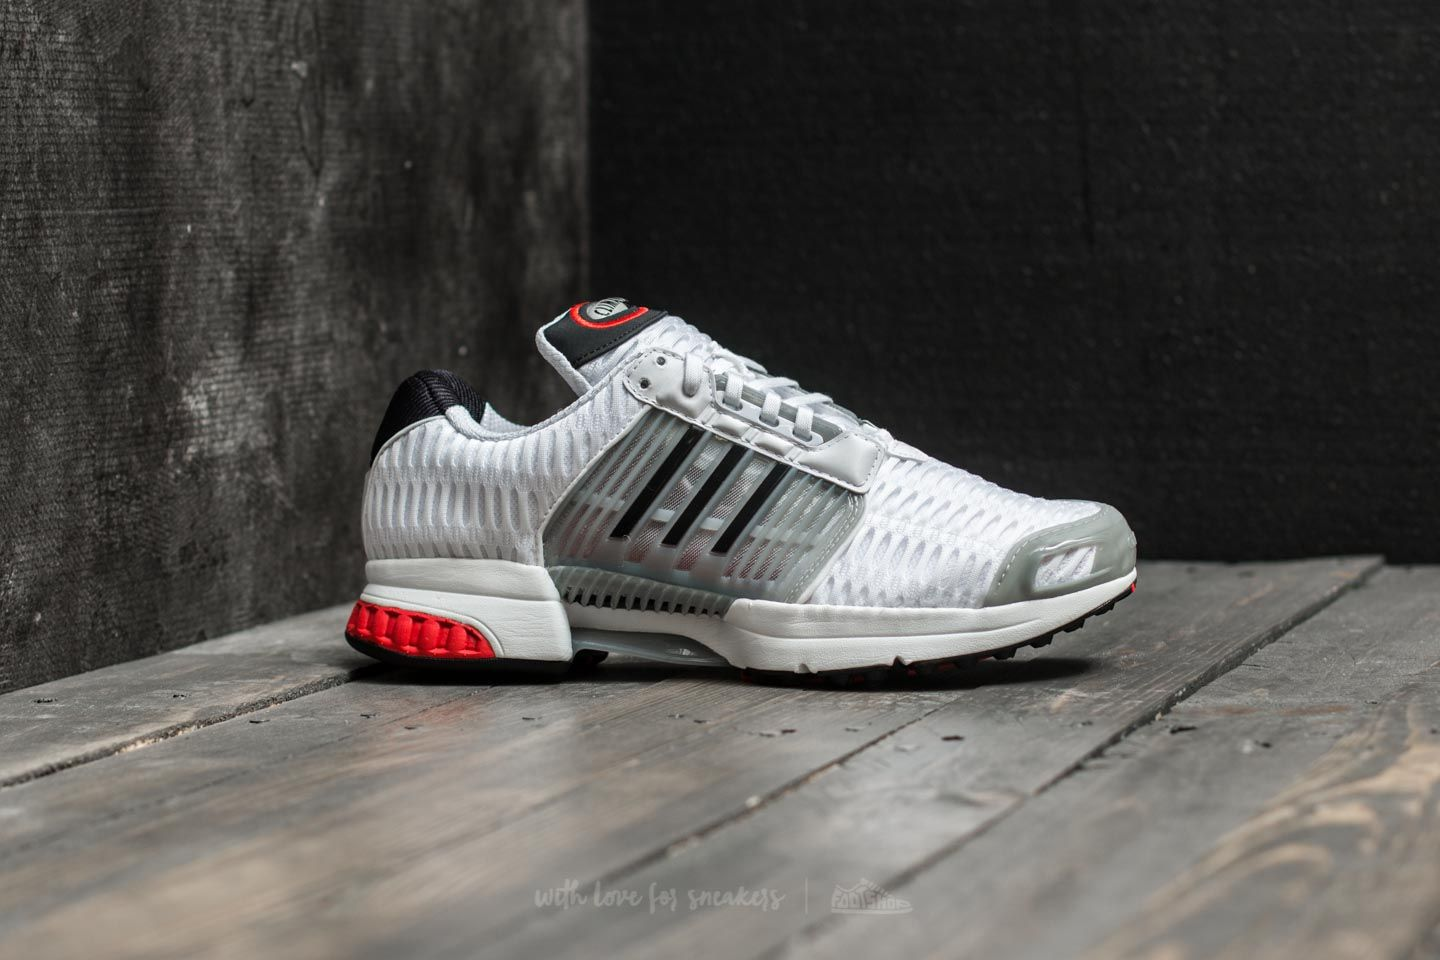 Adidas climacool for Long Ride!